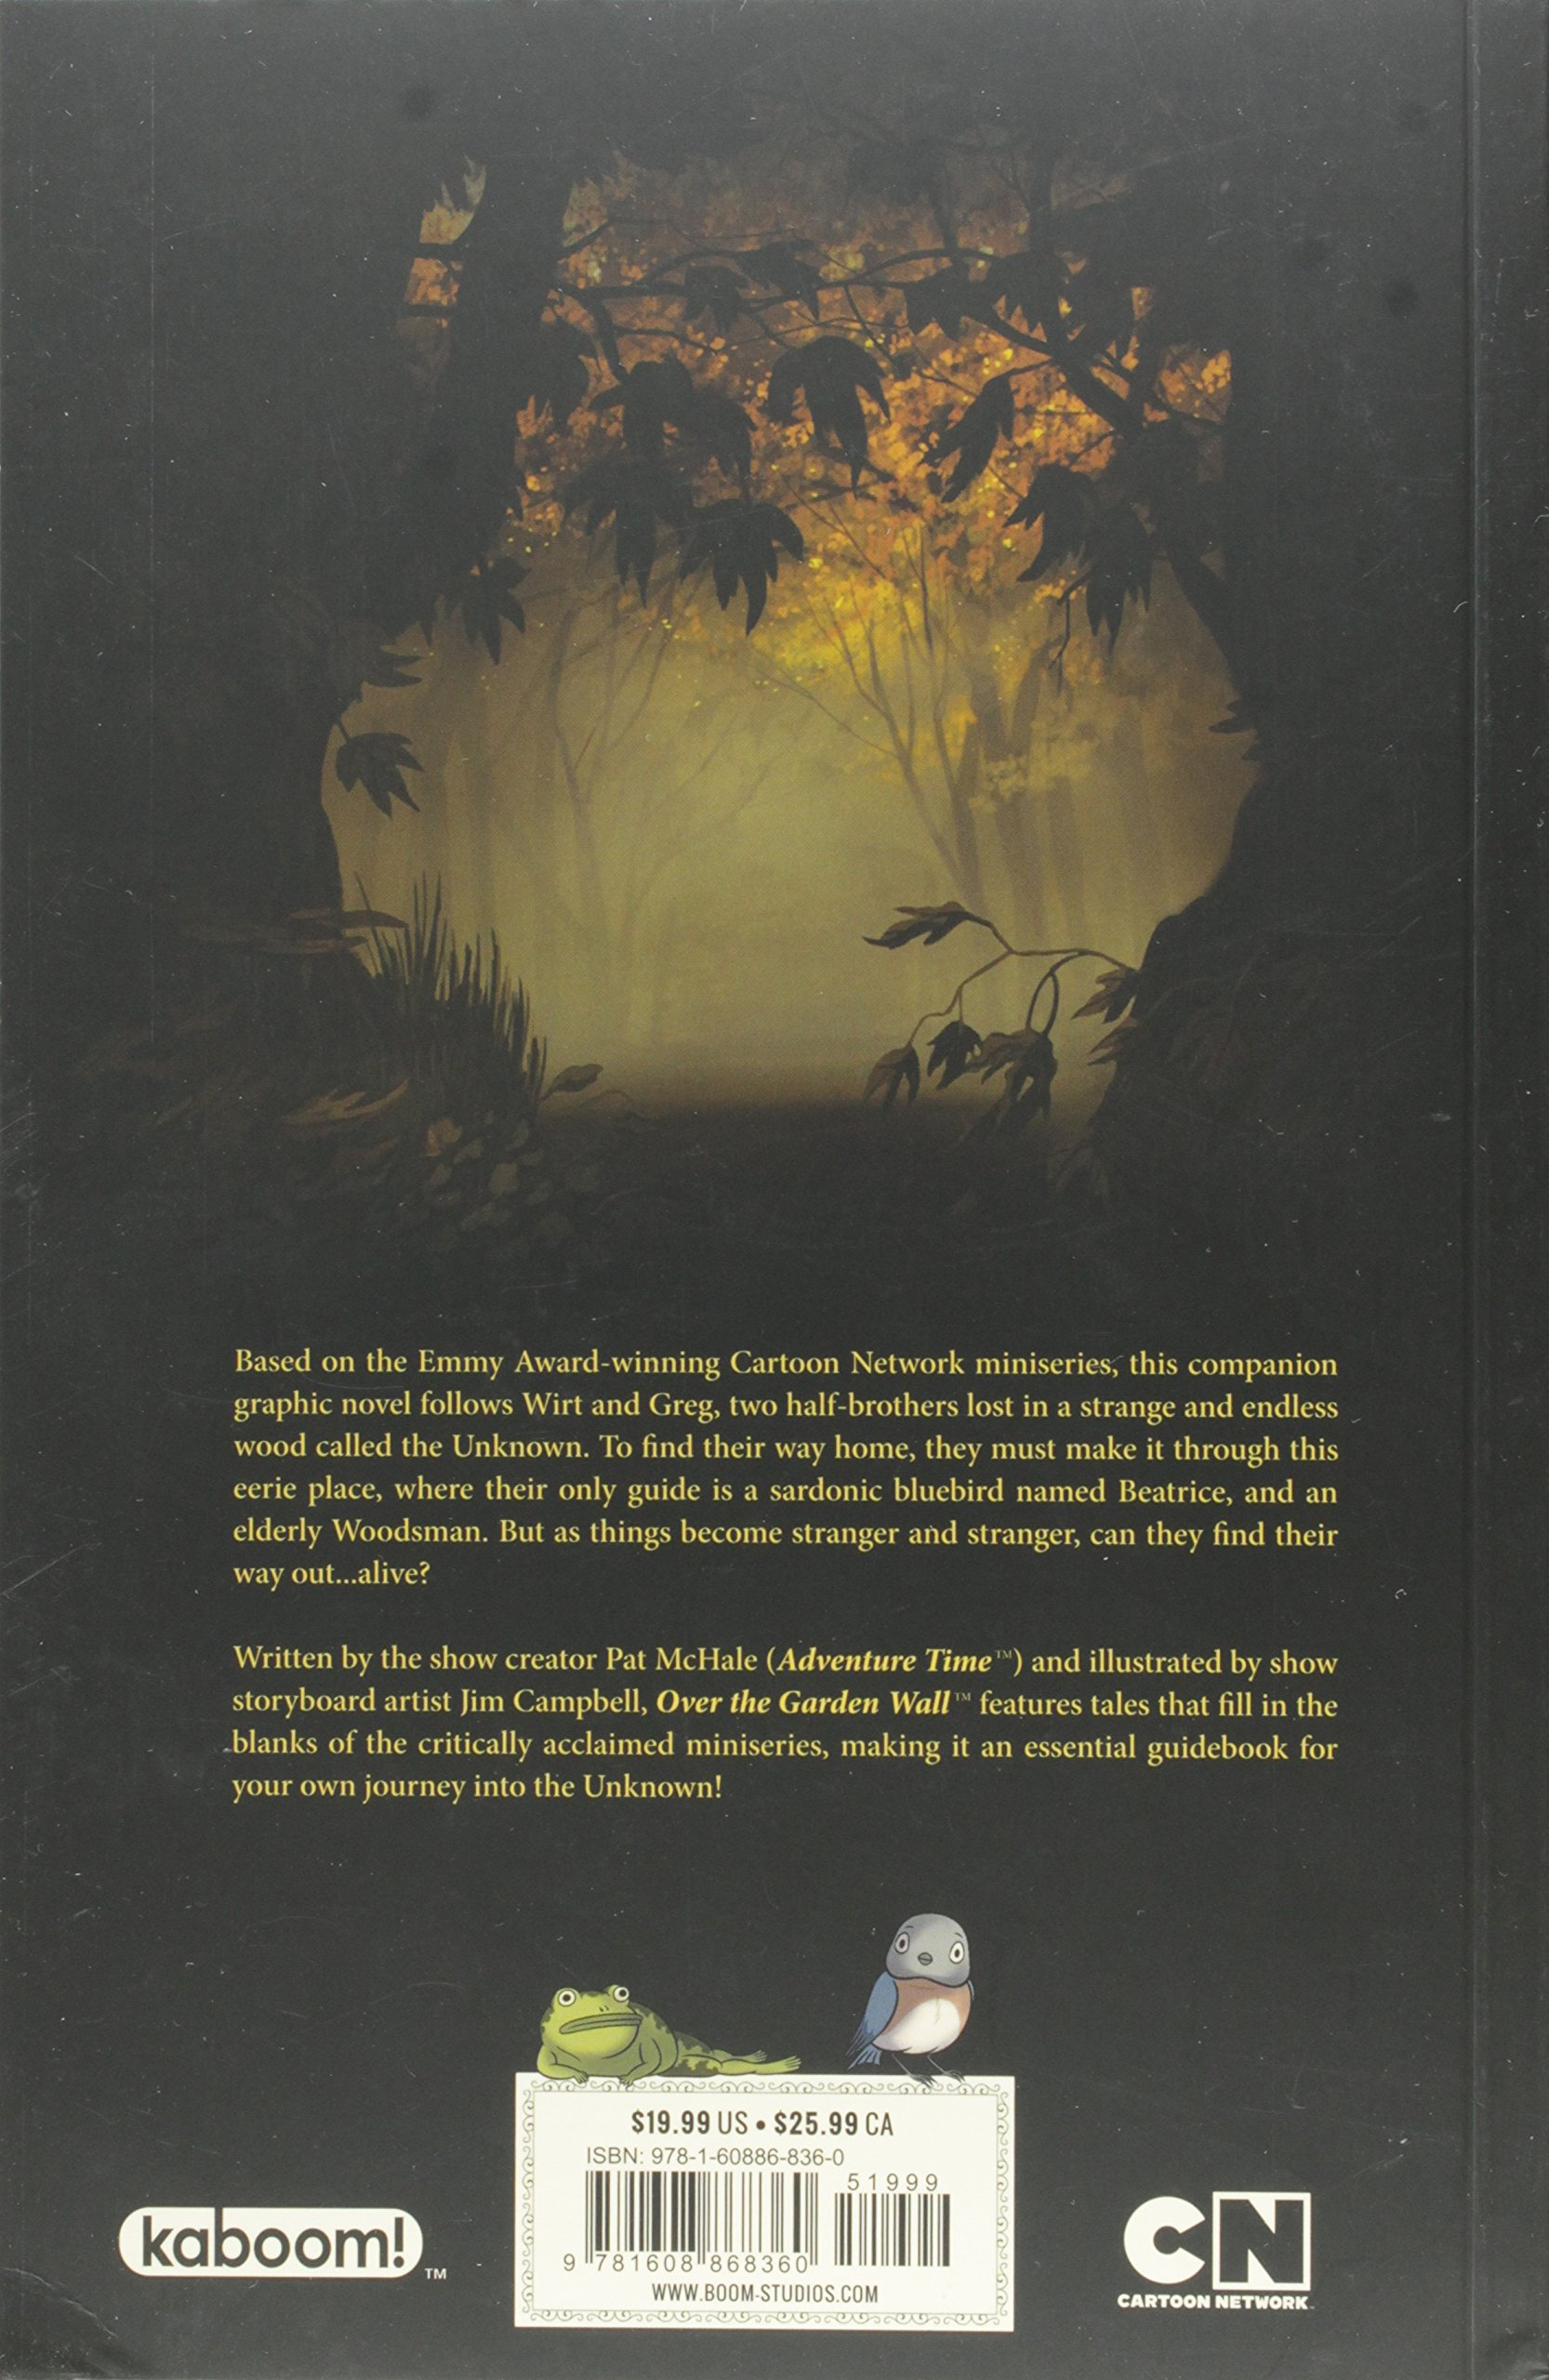 Over The Garden Wall: Tome of the Unknown by Kaboom (Image #2)